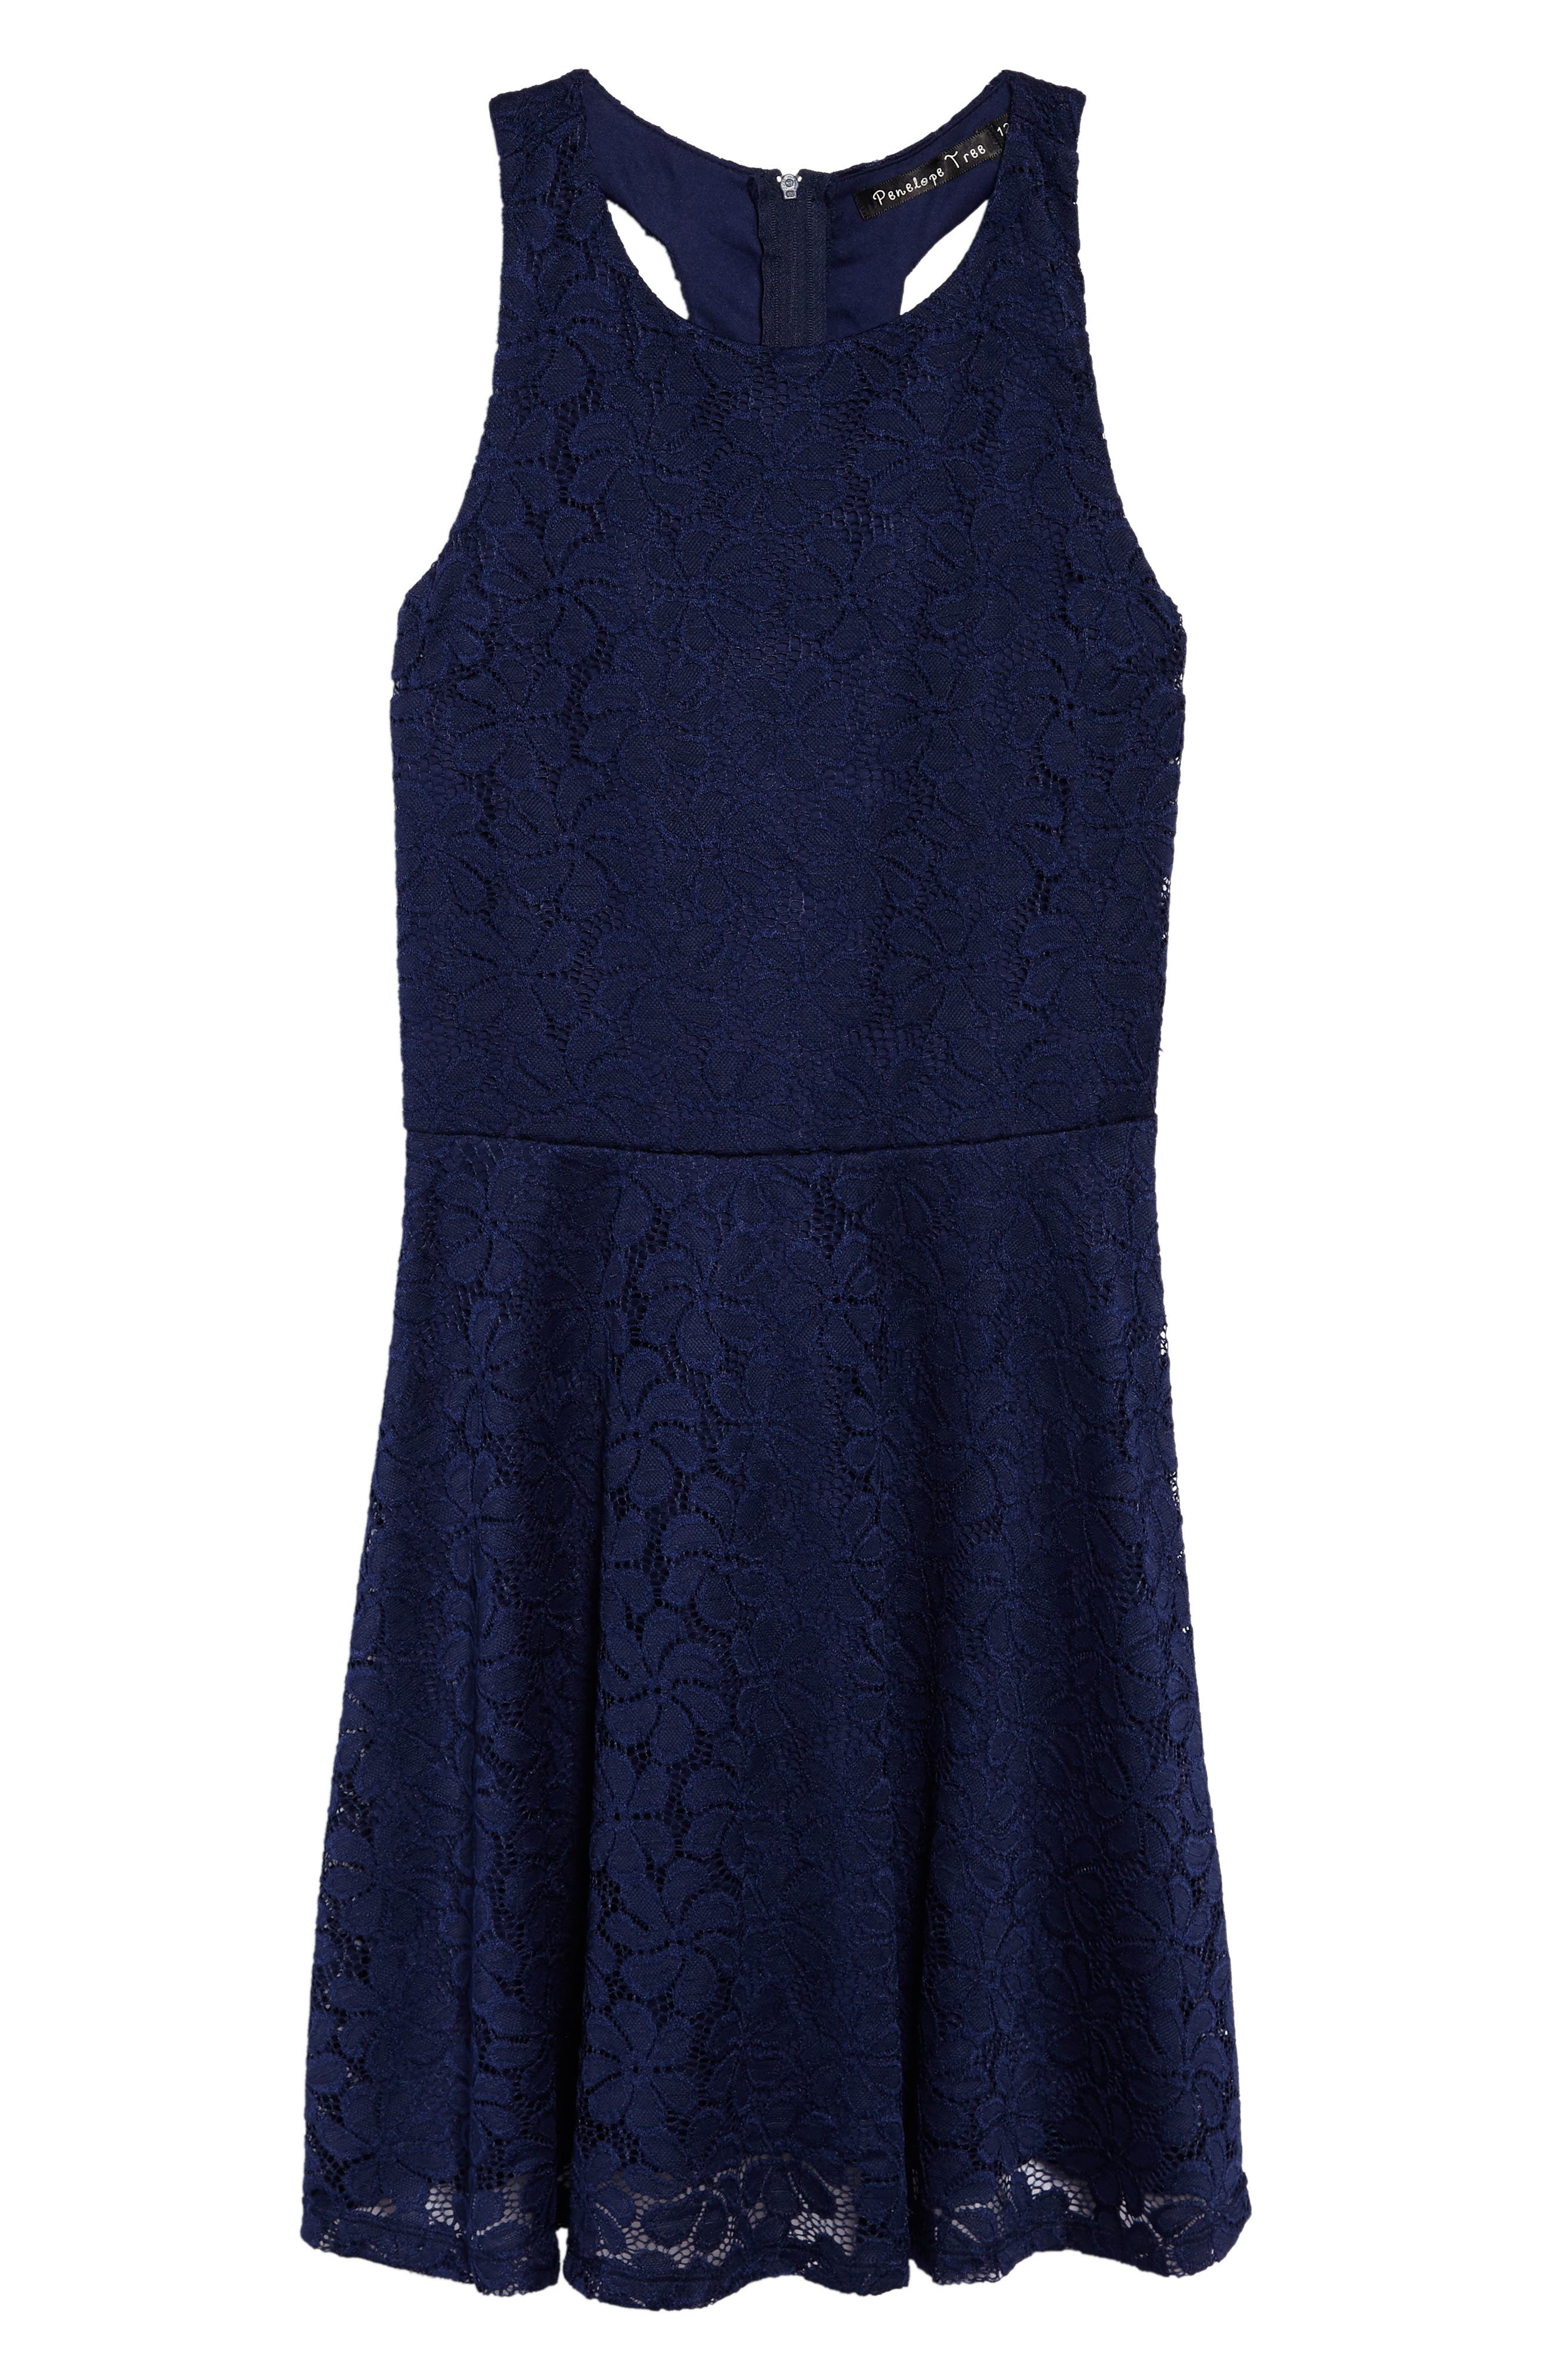 Betty Racerback Lace Dress,                             Main thumbnail 1, color,                             410